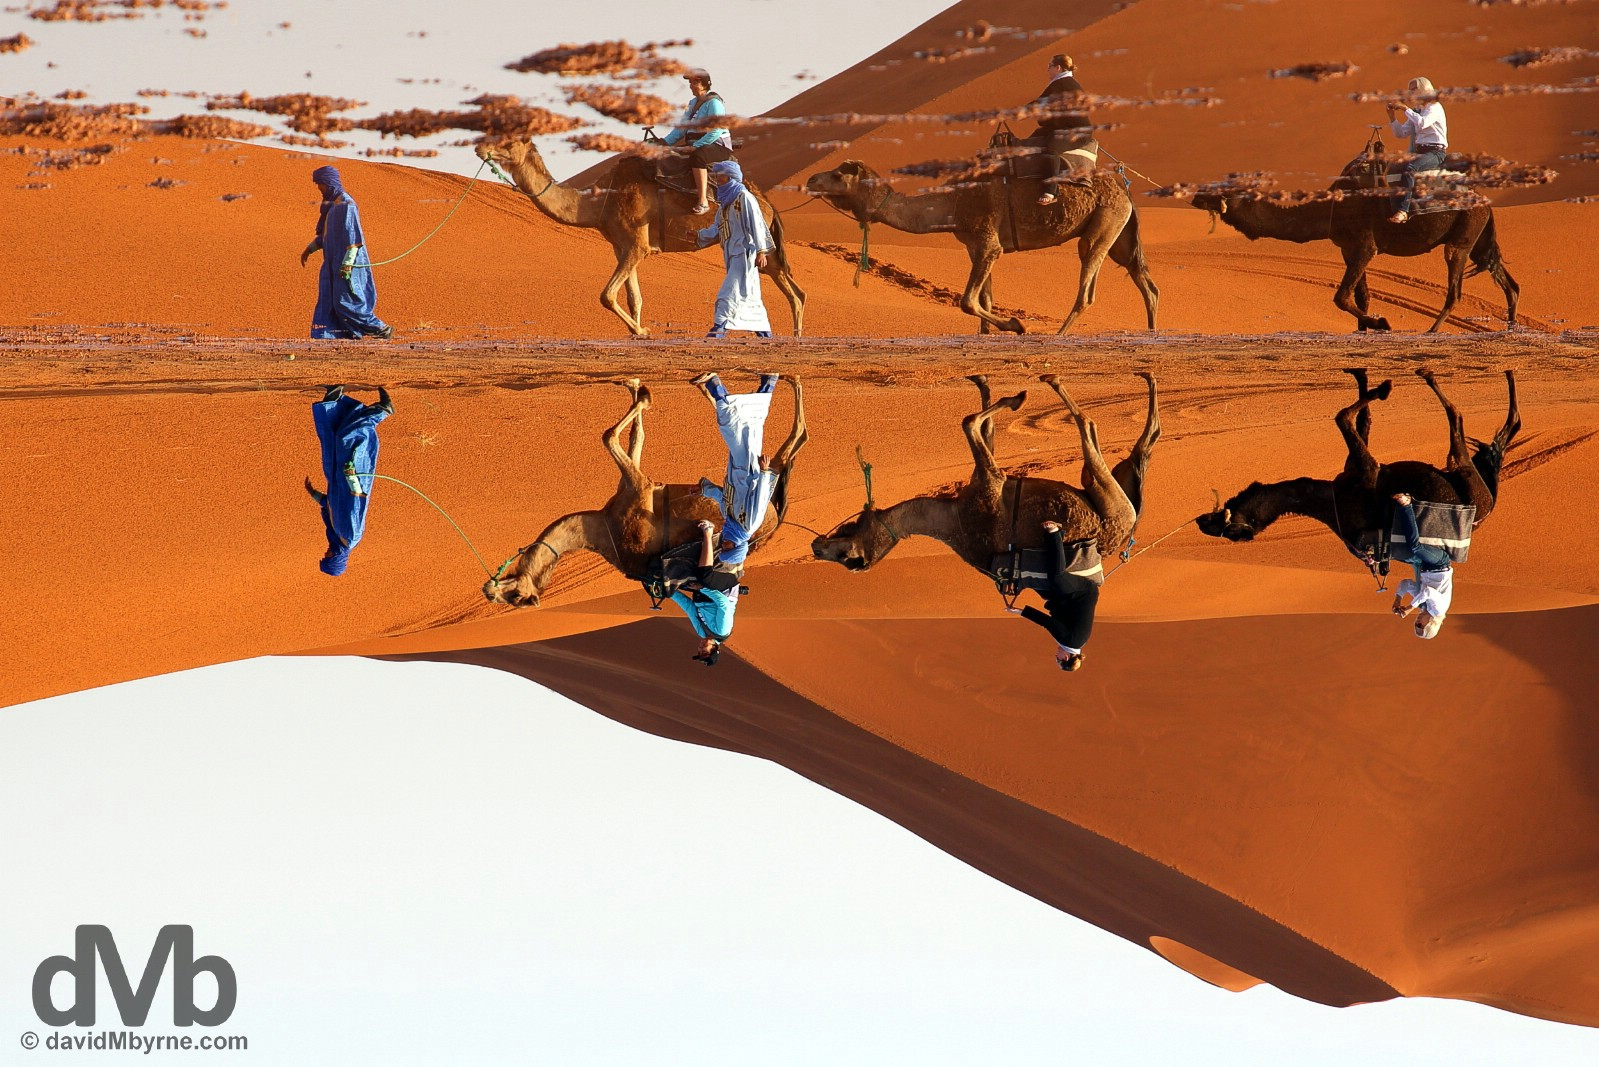 An inverted camel train reflection in the desert of Erg Chebbi, southeastern Morocco. May 19, 2014.